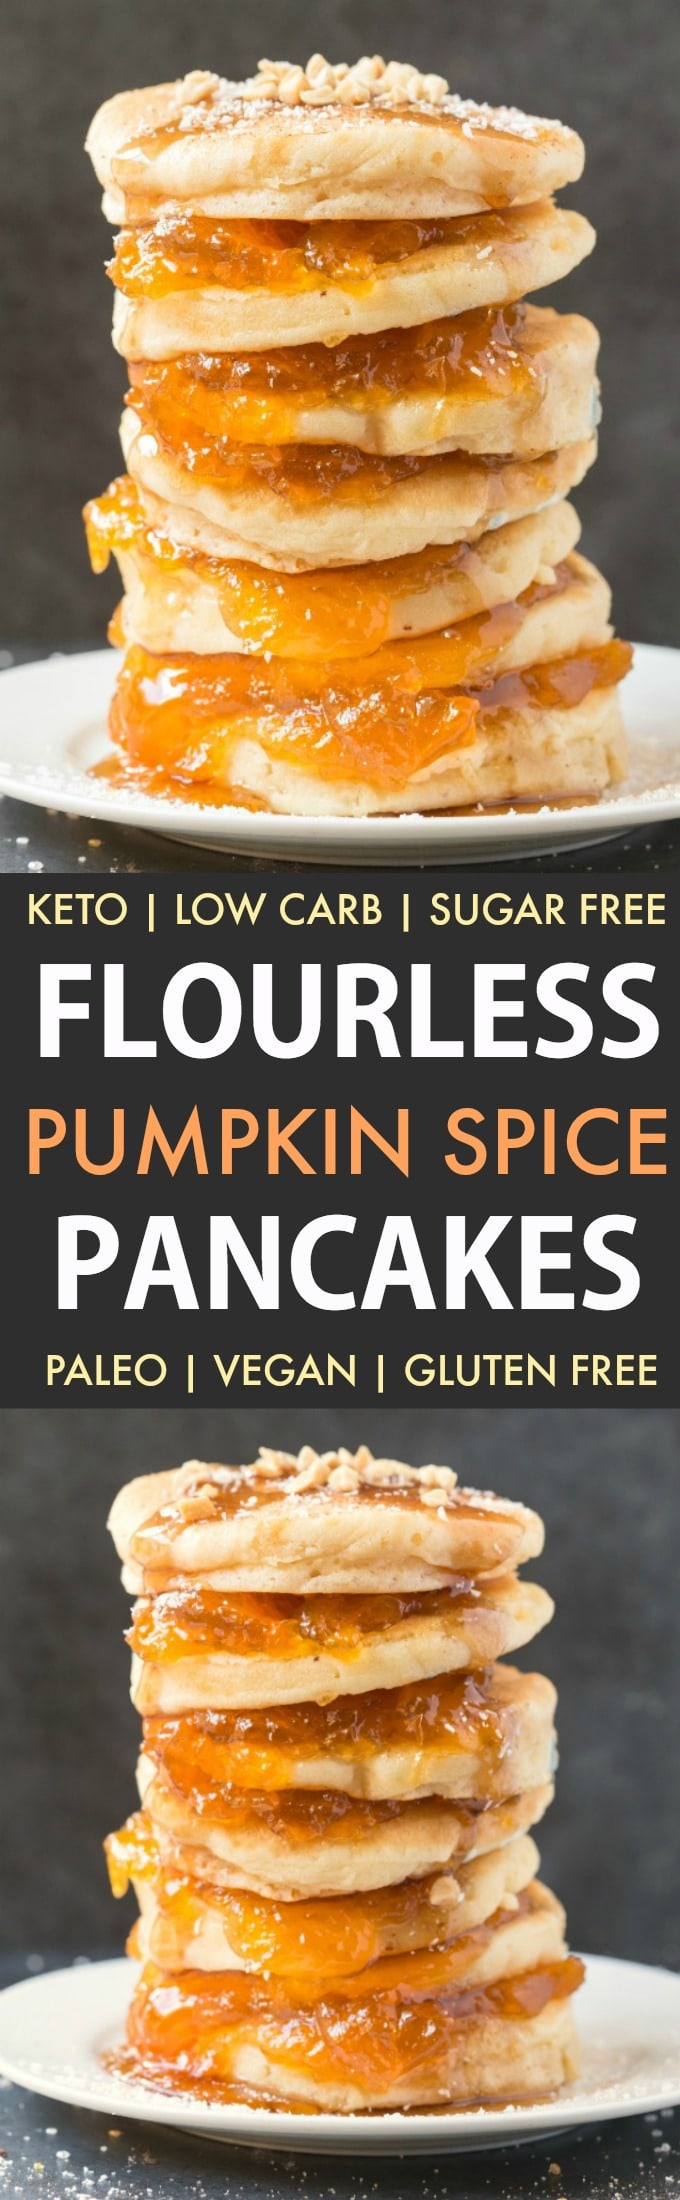 Healthy Flourless Pumpkin Spice Pancakes (Paleo, Vegan, Keto, Low Carb)- Thick, fluffy pancakes made with almond flour and coconut flour- Tested with an eggless and flourless option too- The perfect protein-packed, filling and healthy breakfast! #pumpkinpancakes #ketopancakes #paleopancakes #veganpancakes #keto | Recipe on thebigmansworld.com